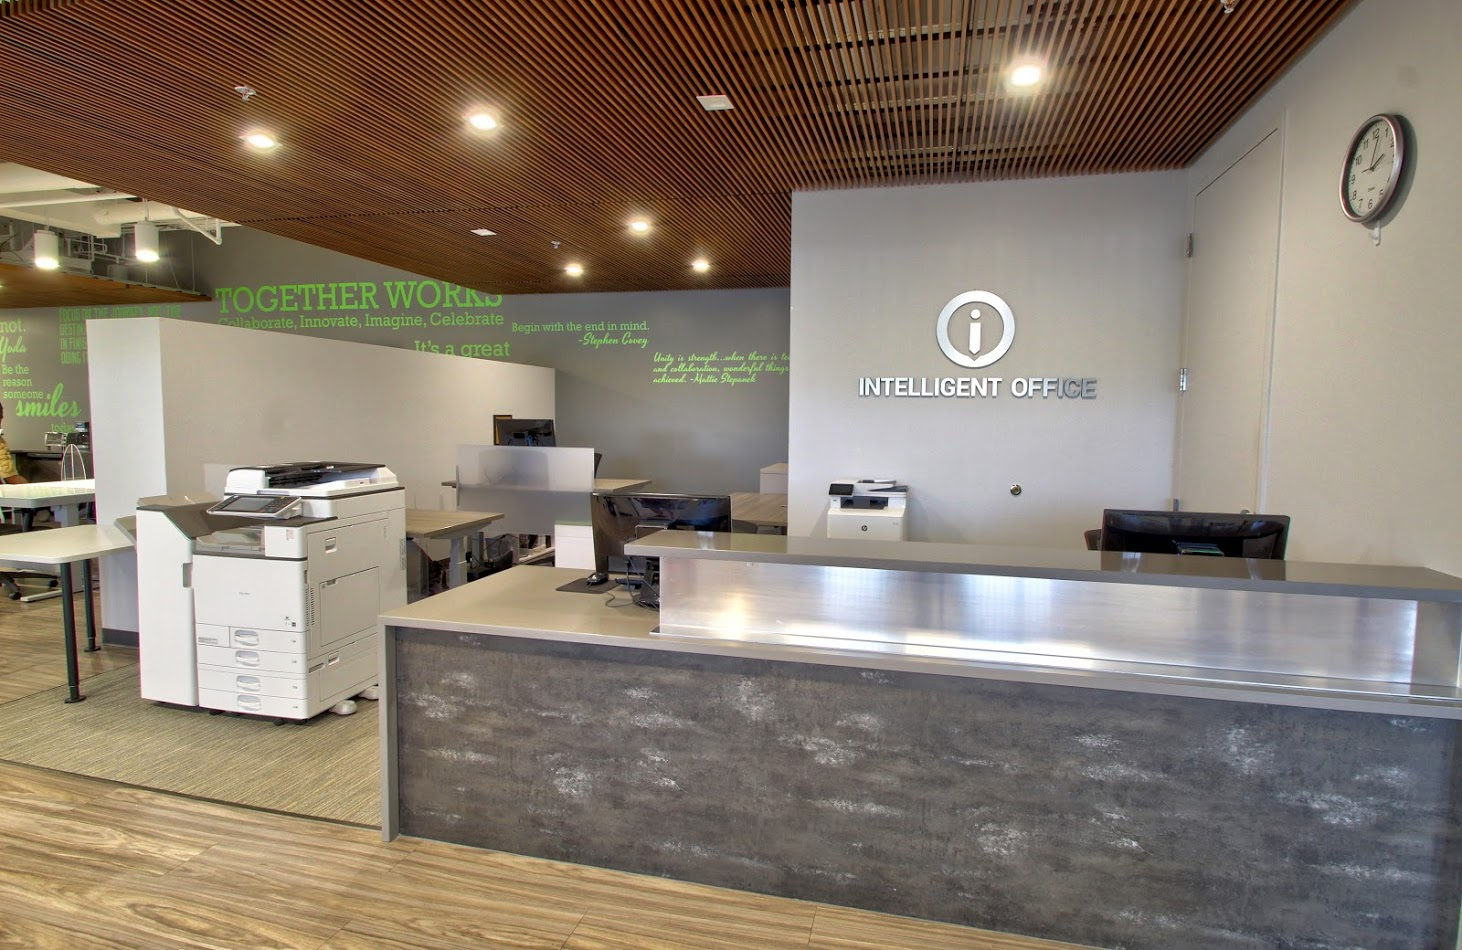 Intelligent office in Westminster, CO